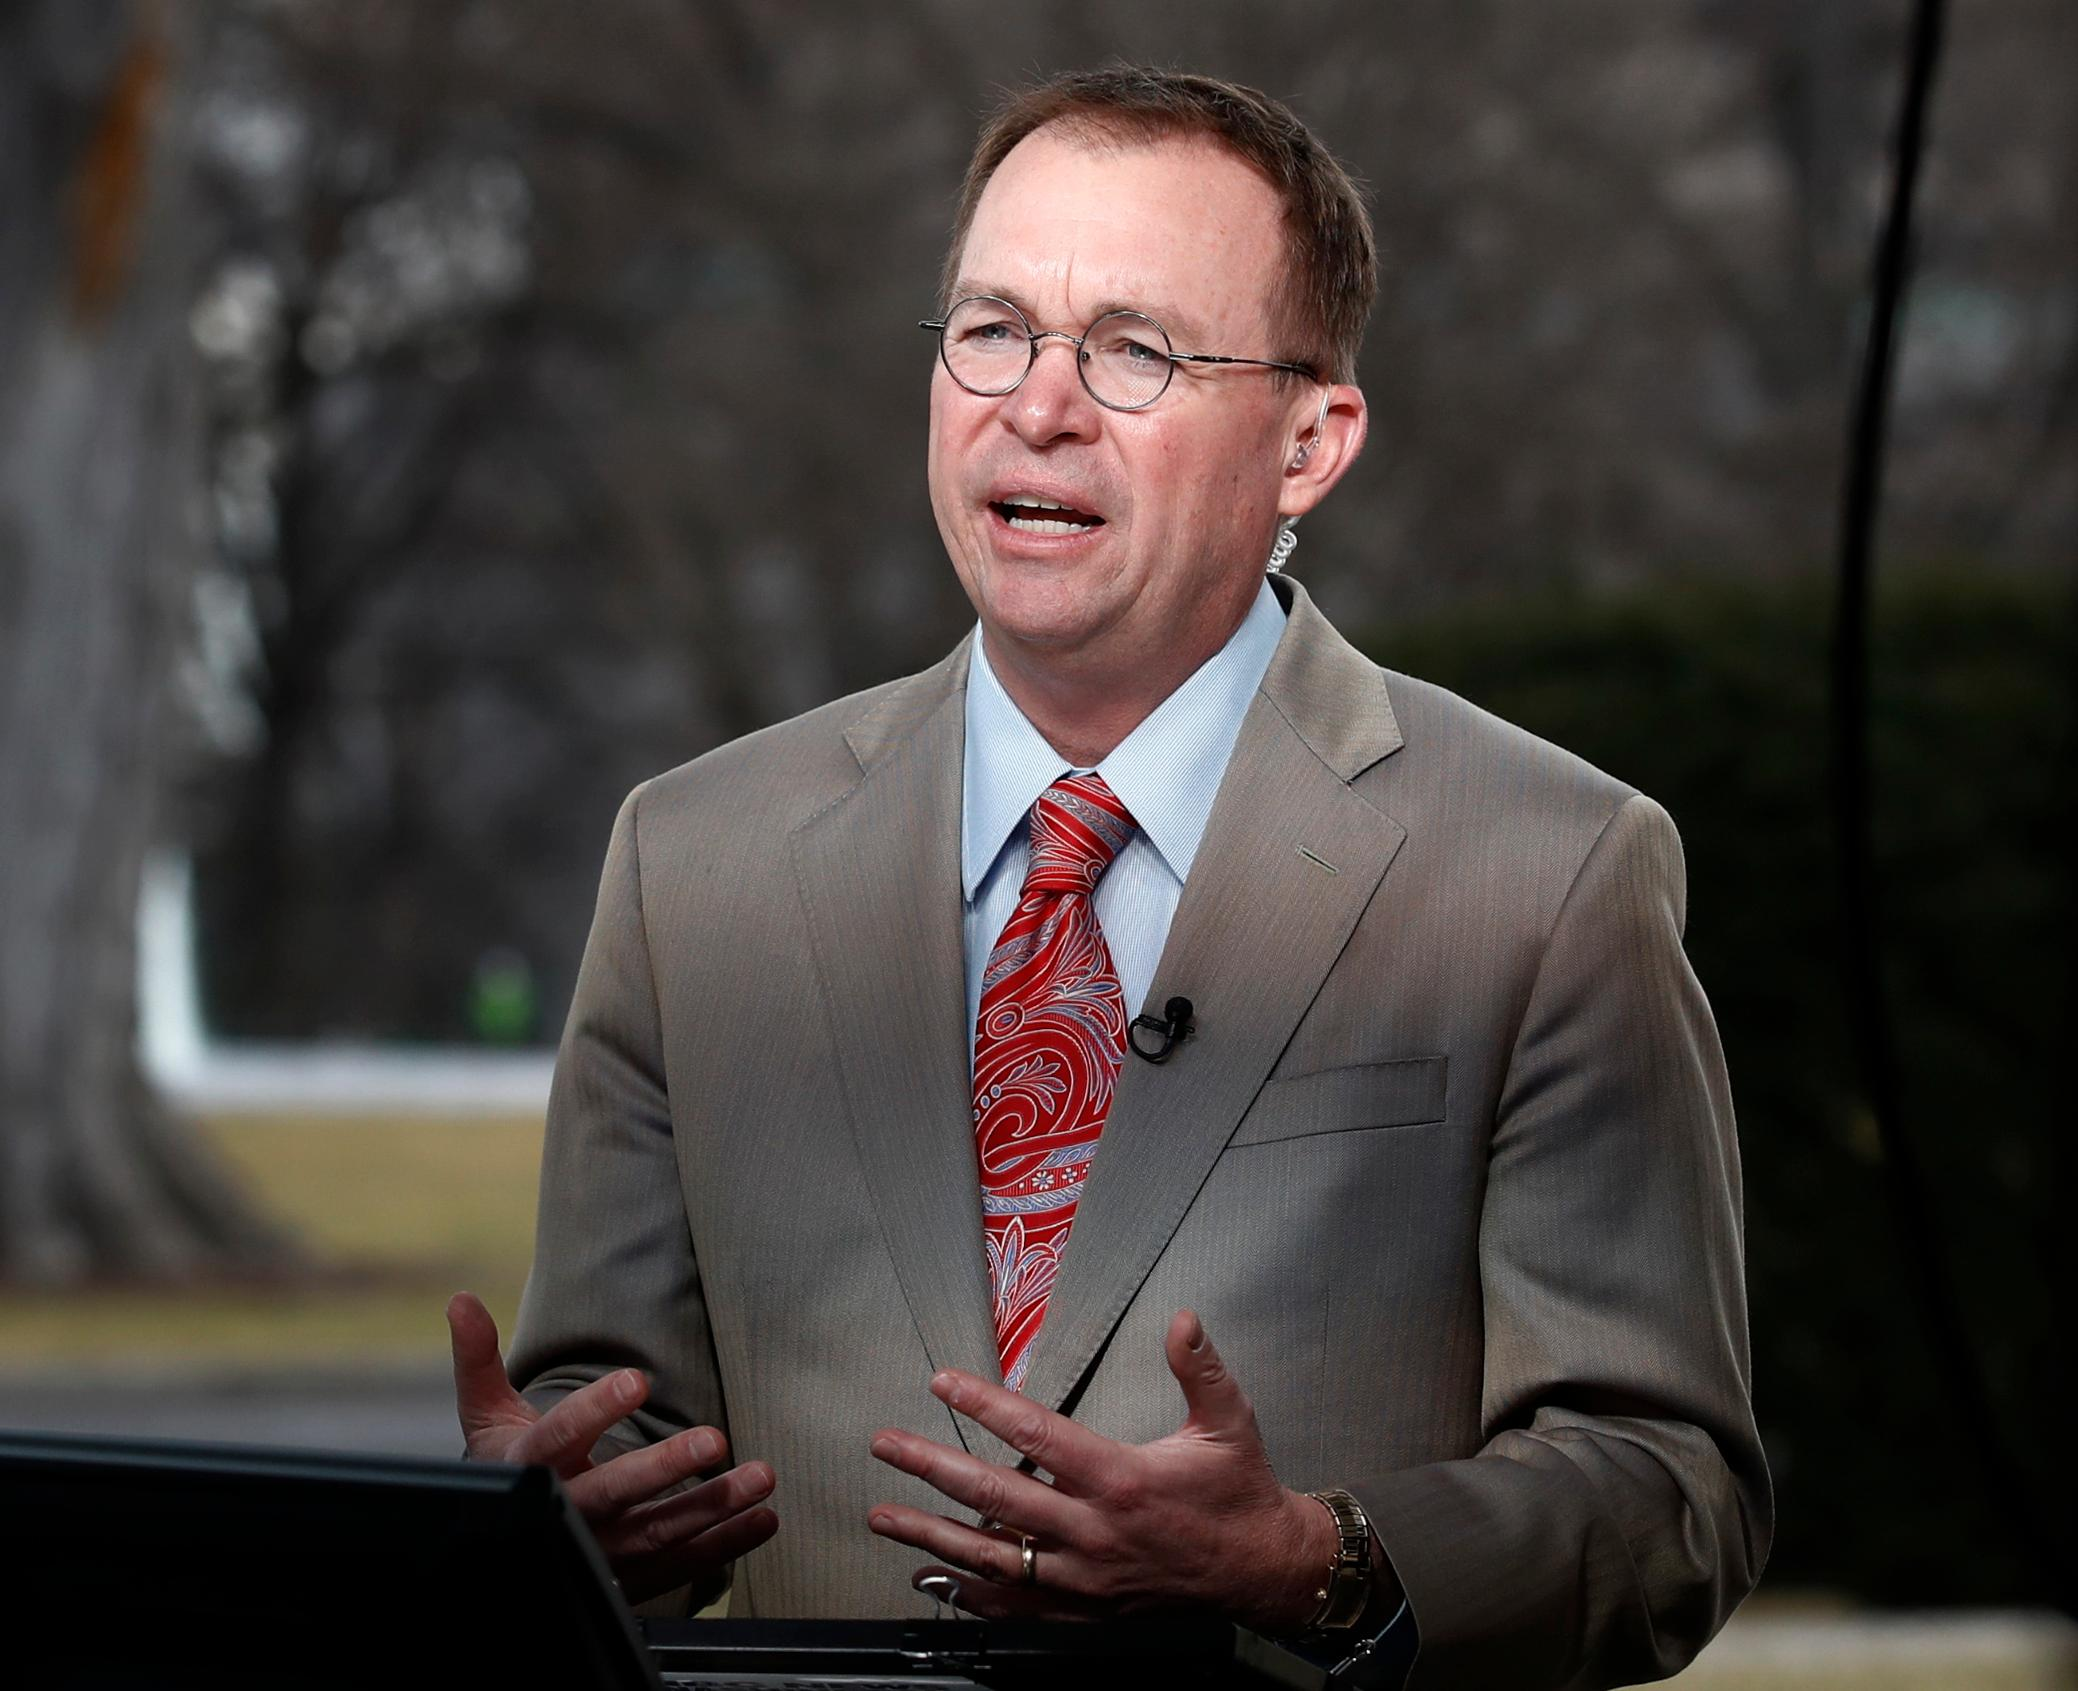 File- This Jan. 22, 2018, file photo shows Director of the Office of Management and Budget Mick Mulvaney talking during a television interview outside the White House in Washington. Mulvaney, the former tea party congressman who runs the White House budget office, said Sunday, Feb. 11, 2018, that Trump's new budget, if implemented, would tame the deficit over time, though unlike last year's submission, it wouldn't promise to balance the federal ledger eventually. (AP Photo/Carolyn Kaster, File)